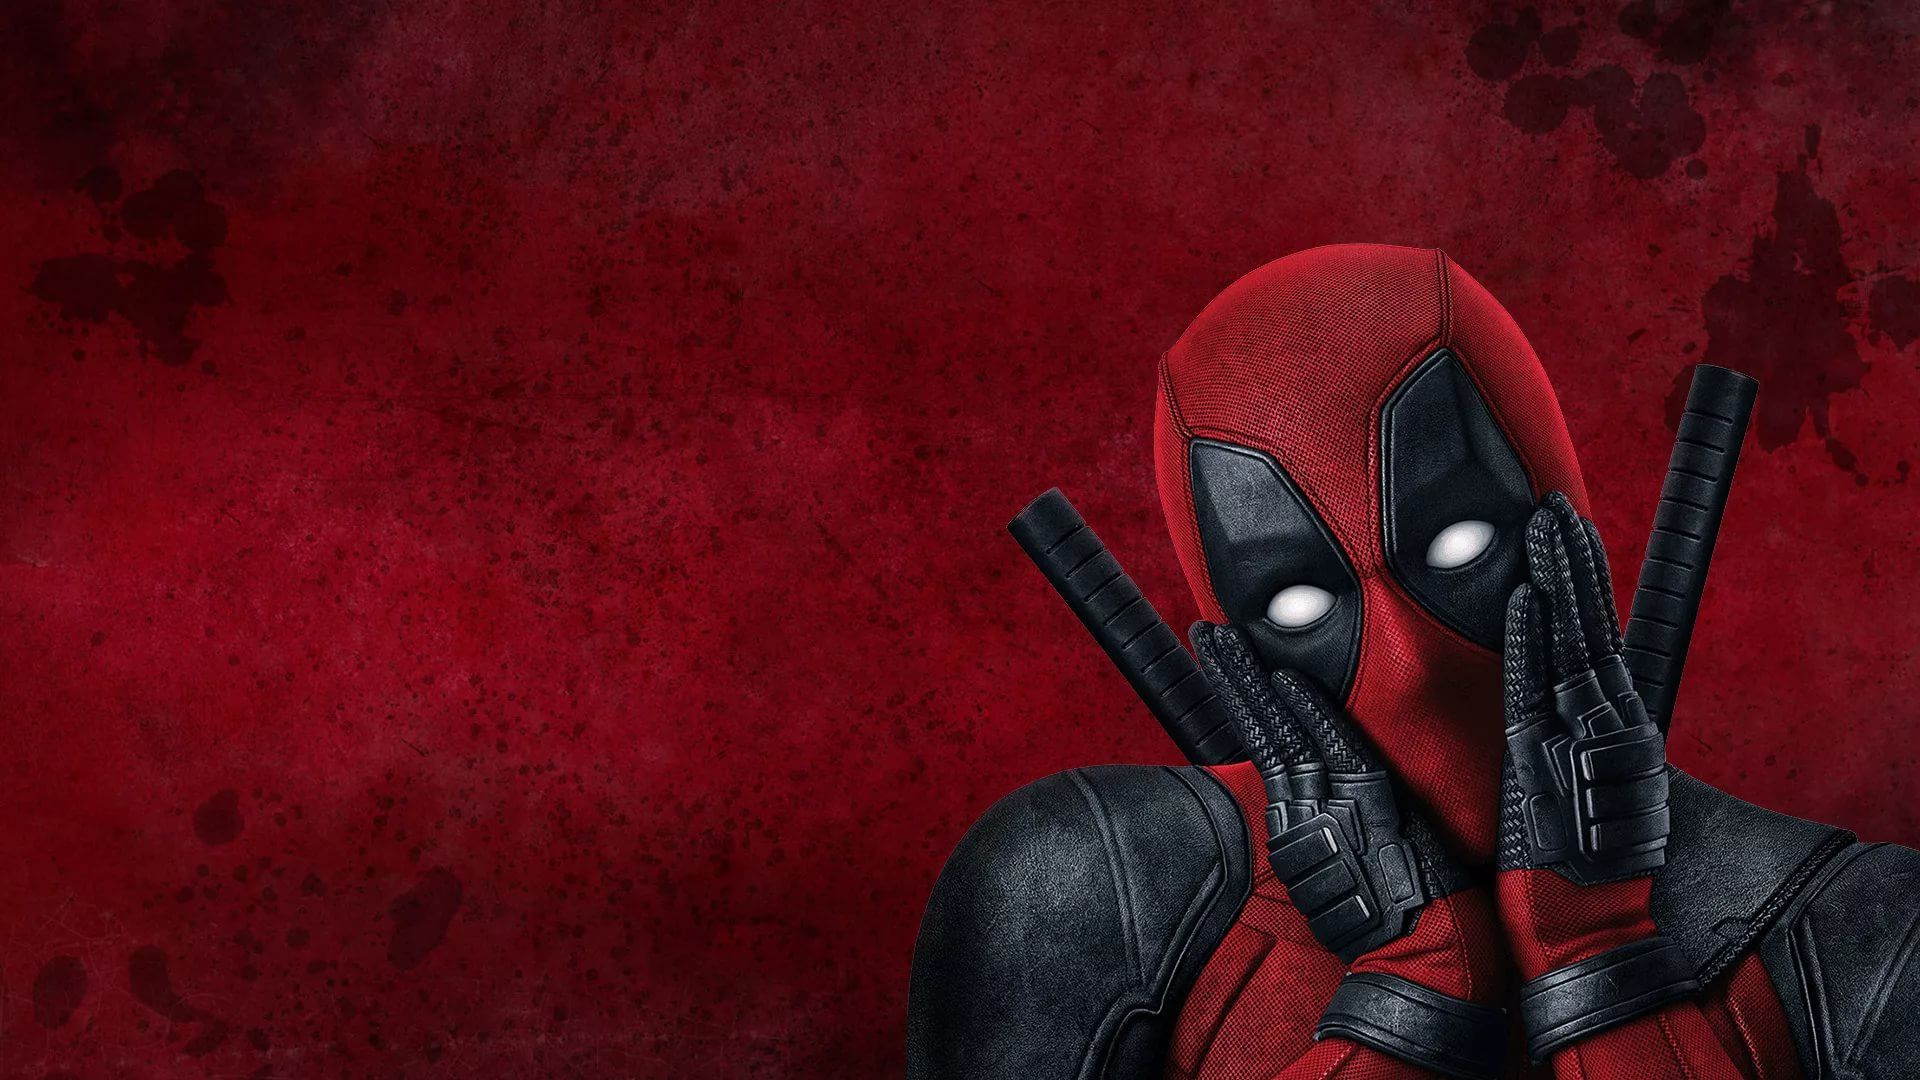 Cool Deadpool Wallpapers For Free Download Find Images That You Can Ad Deadpool Wallpaper Desktop Hd Wallpapers For Laptop Laptop Wallpaper Desktop Wallpapers